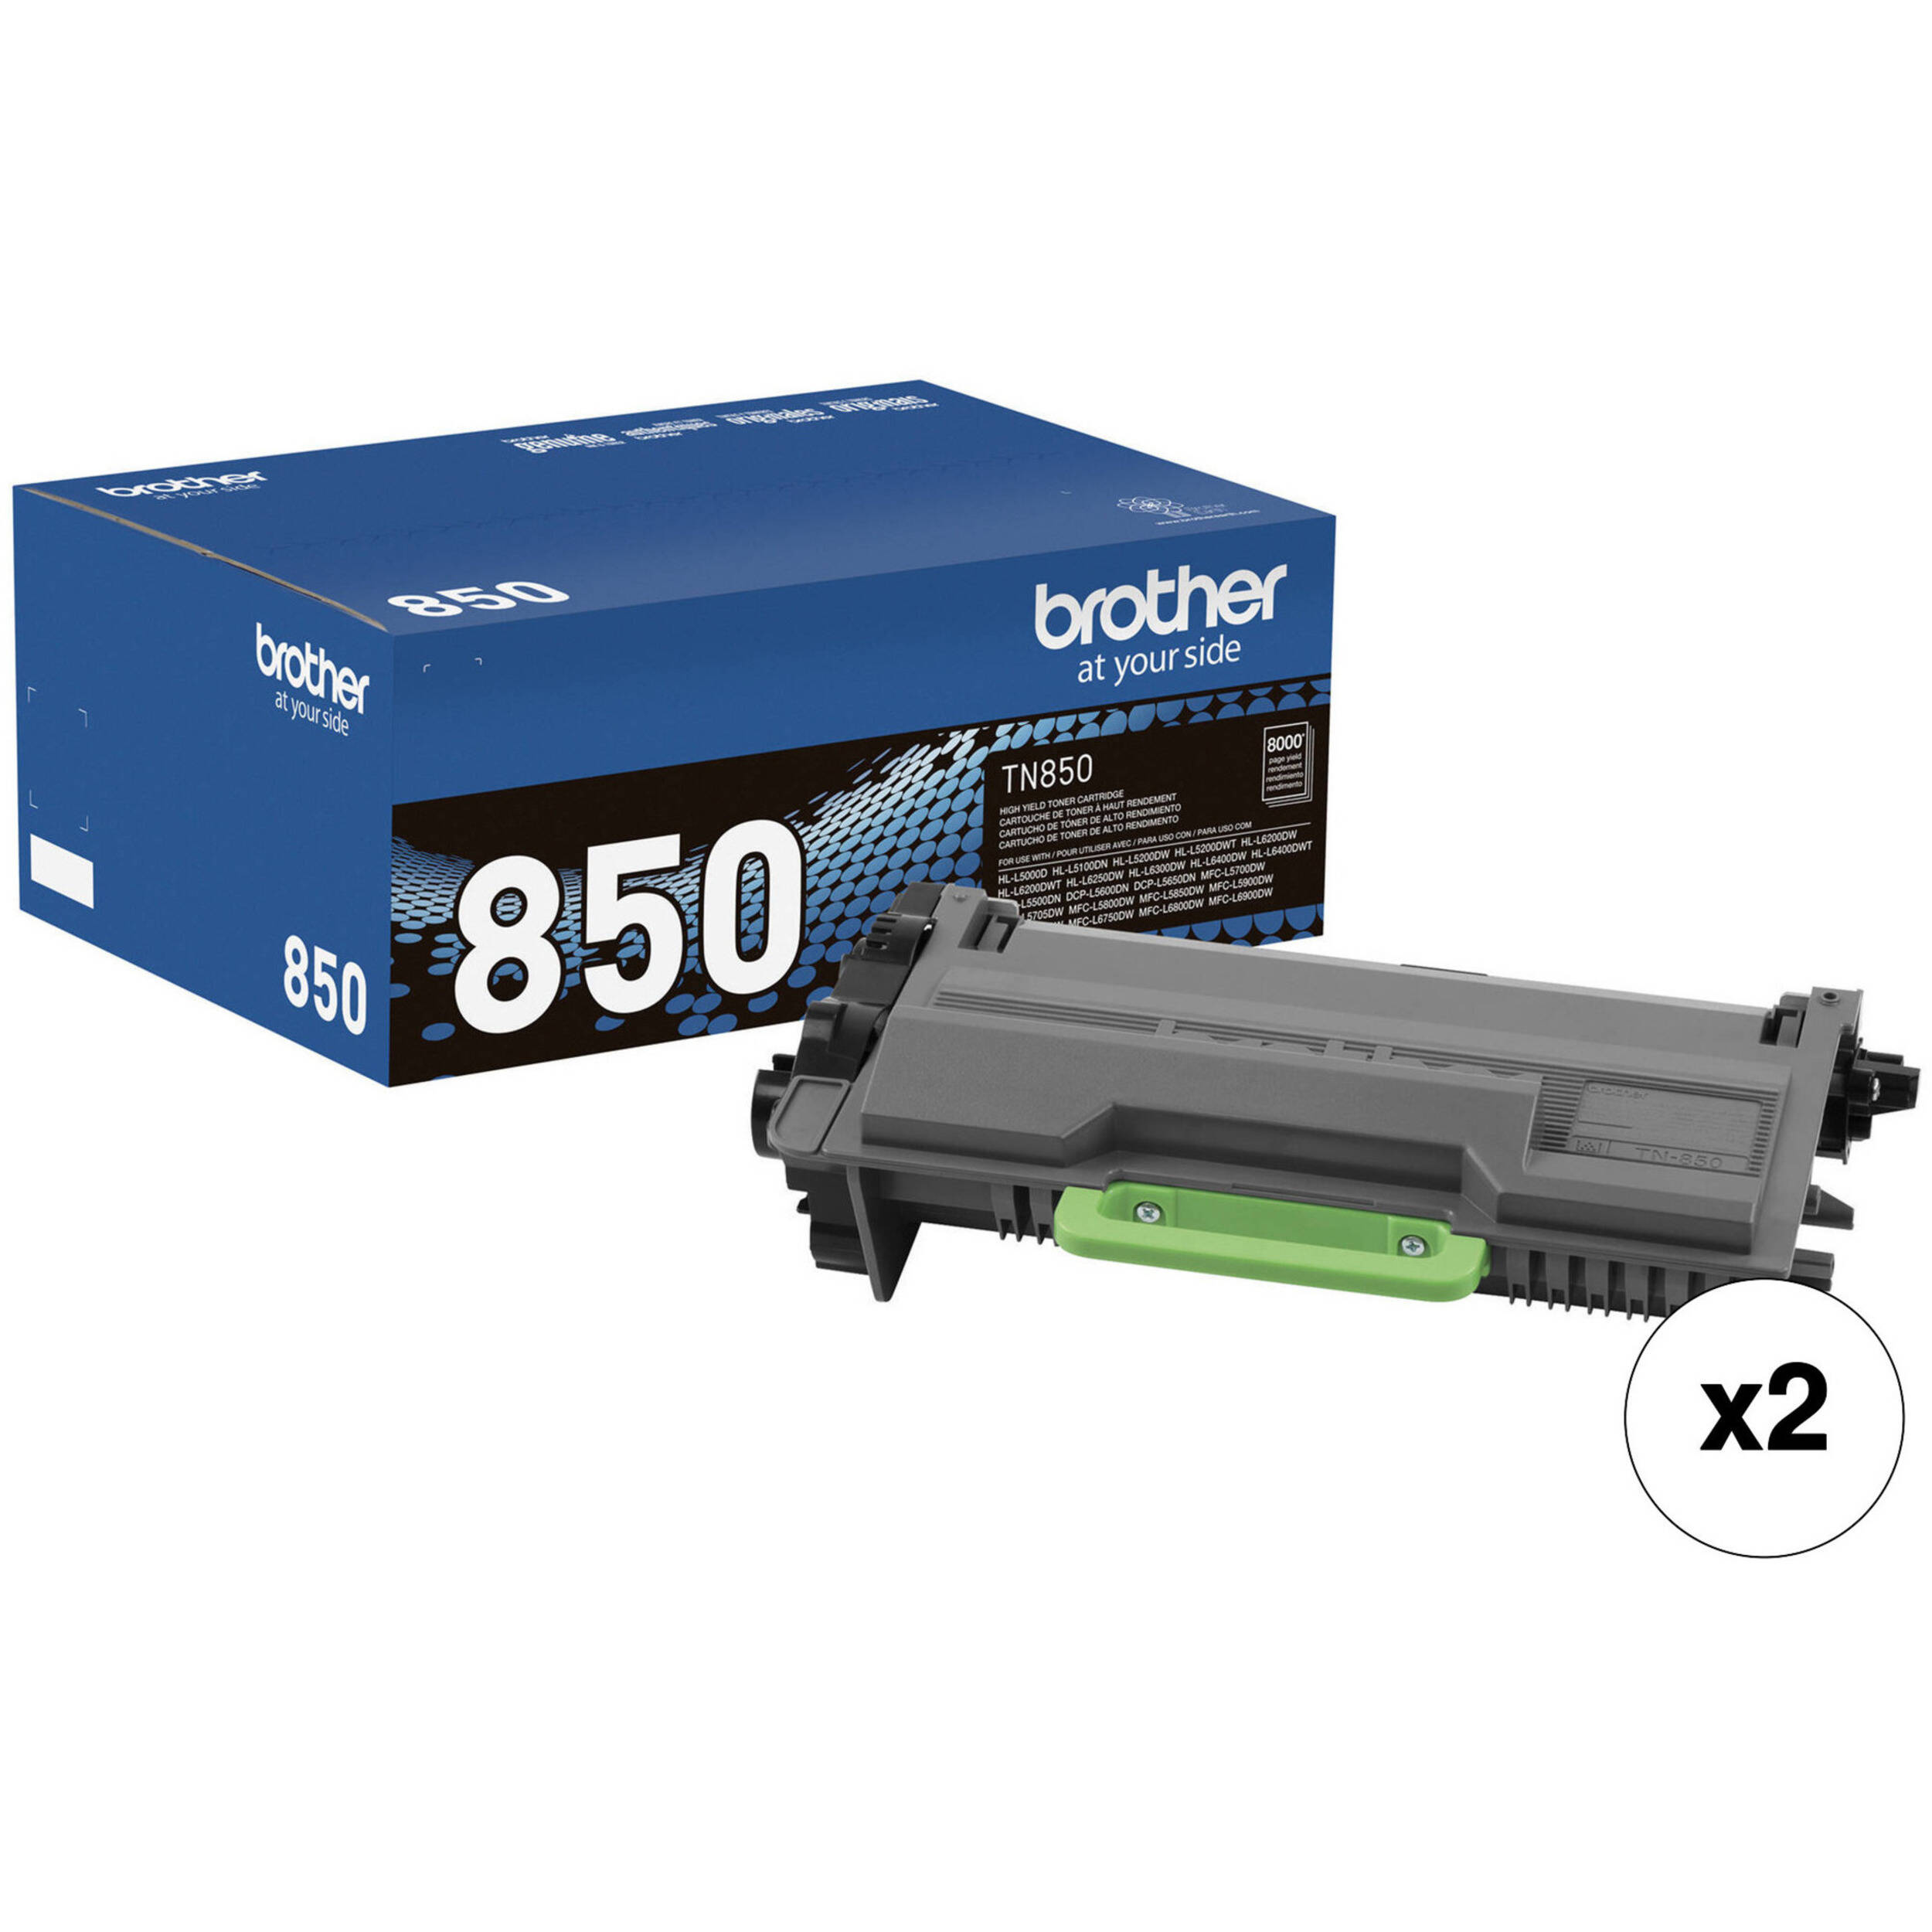 2 - Pack TN-890 Compatible Black Toner Cartridge Nov Replacement for Brother TN890